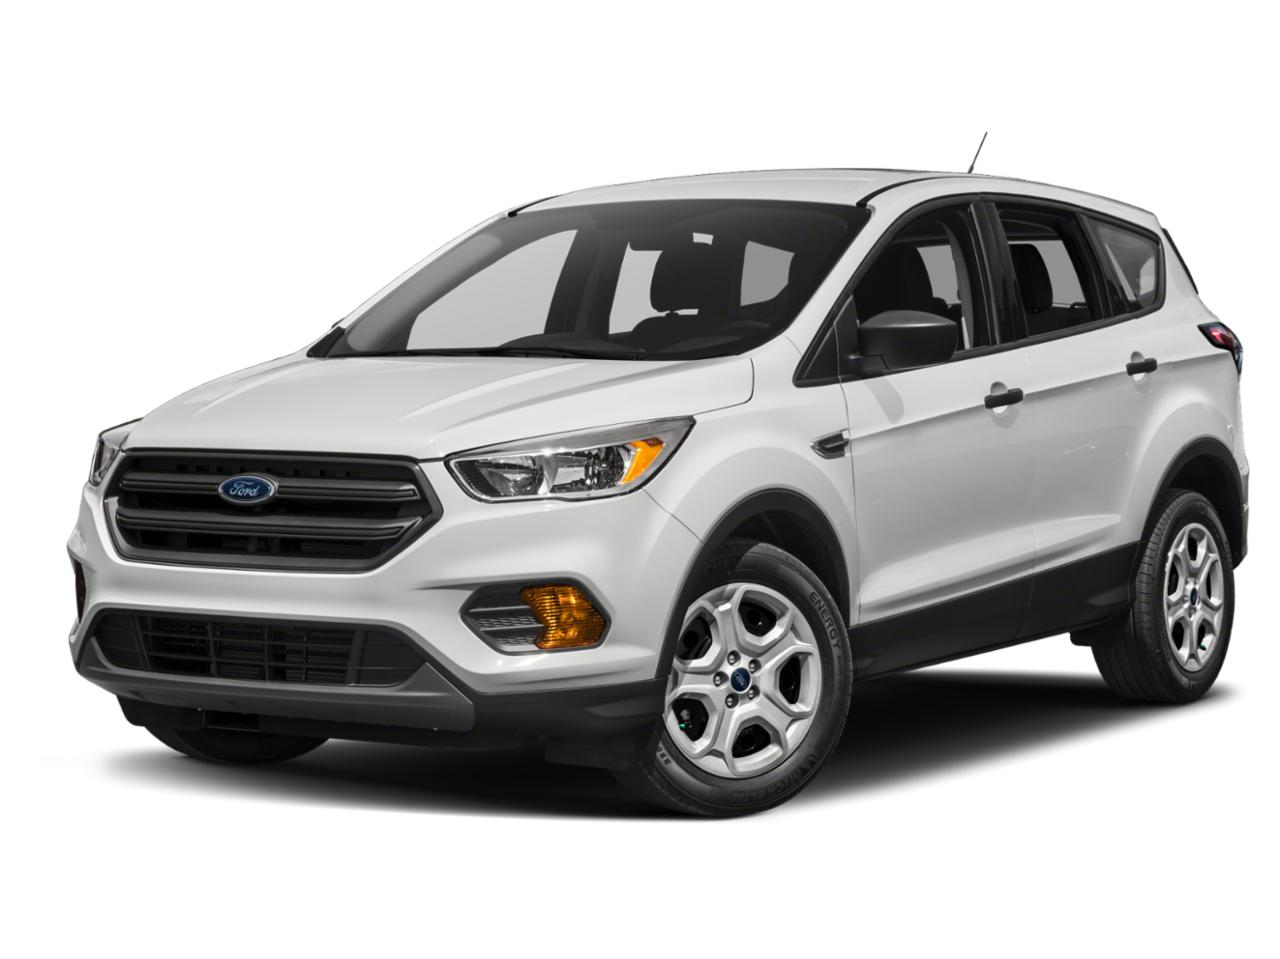 2018 Ford Escape Vehicle Photo in WEST CHESTER, PA 19382-4976